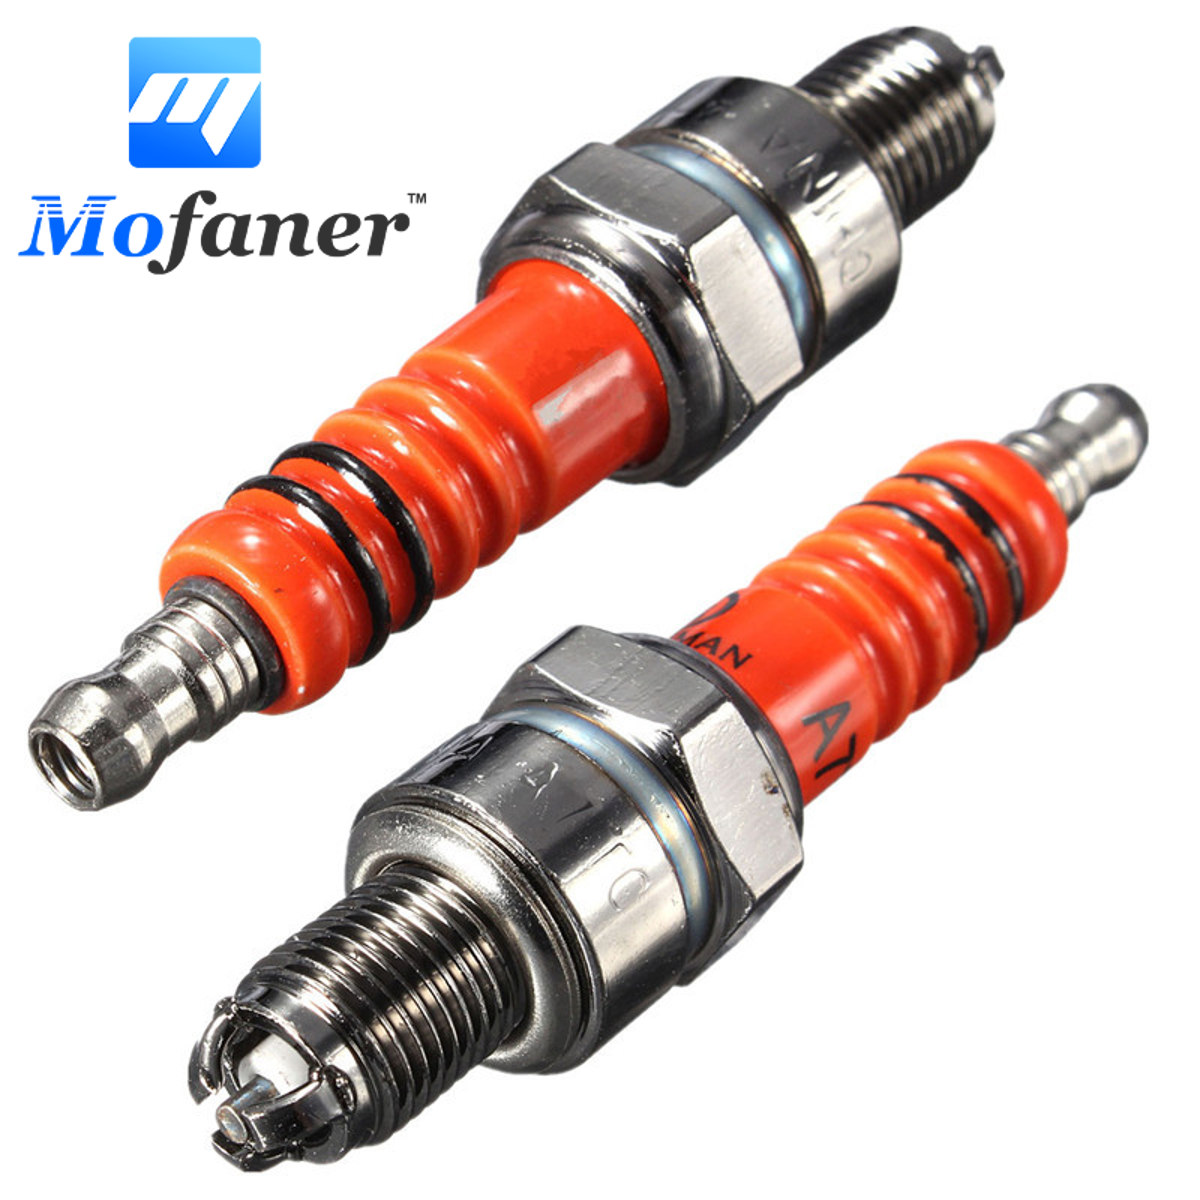 2PCS Scooter Motorcycle Racing 3 Electrode For Spark Plug For Engine GY6 50cc 150cc Rep C7HA C7HSA